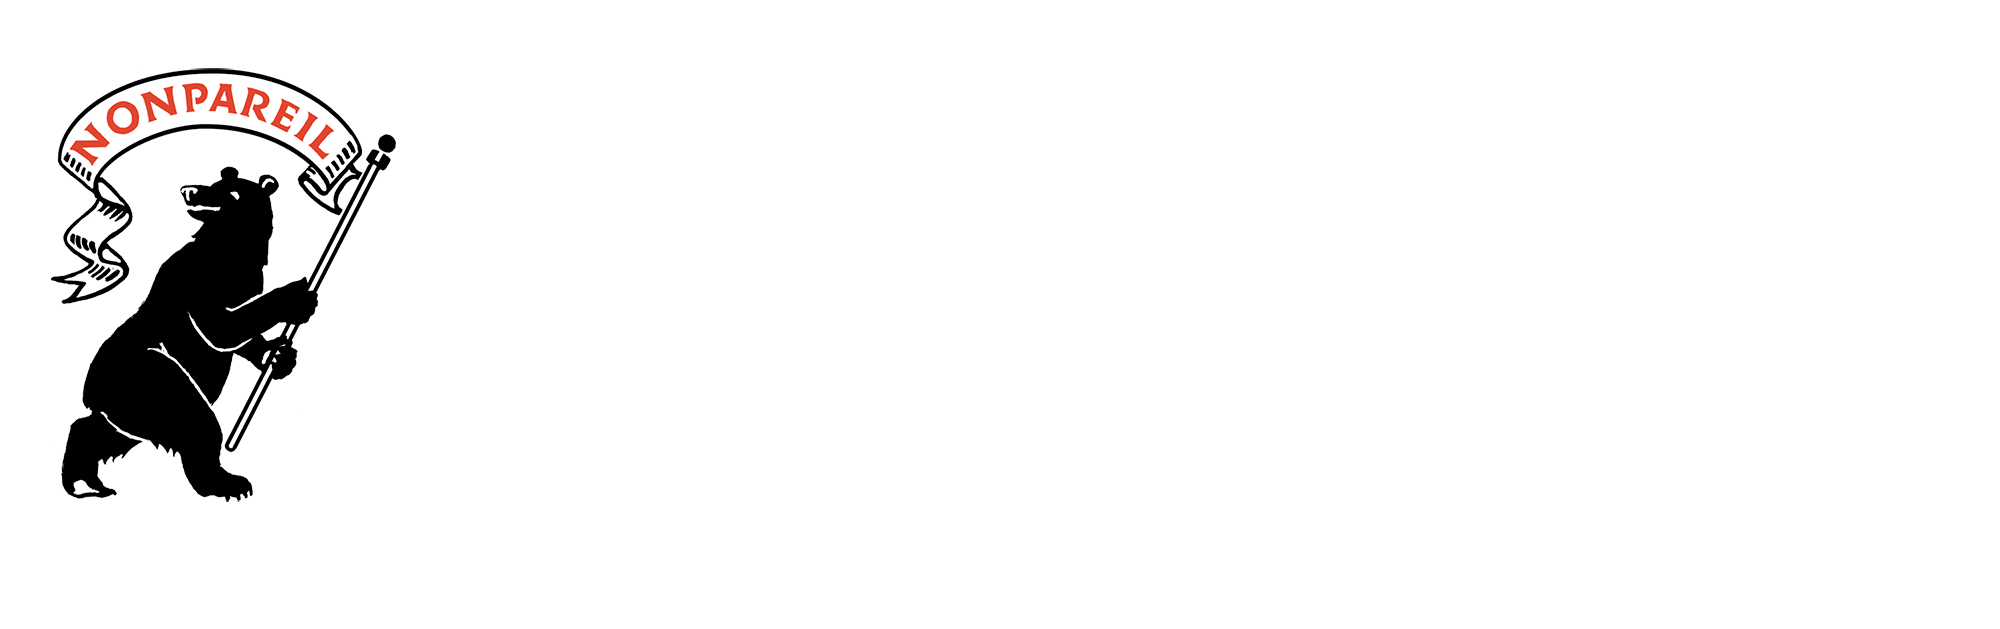 Am I your type? I'm Epigrammata.